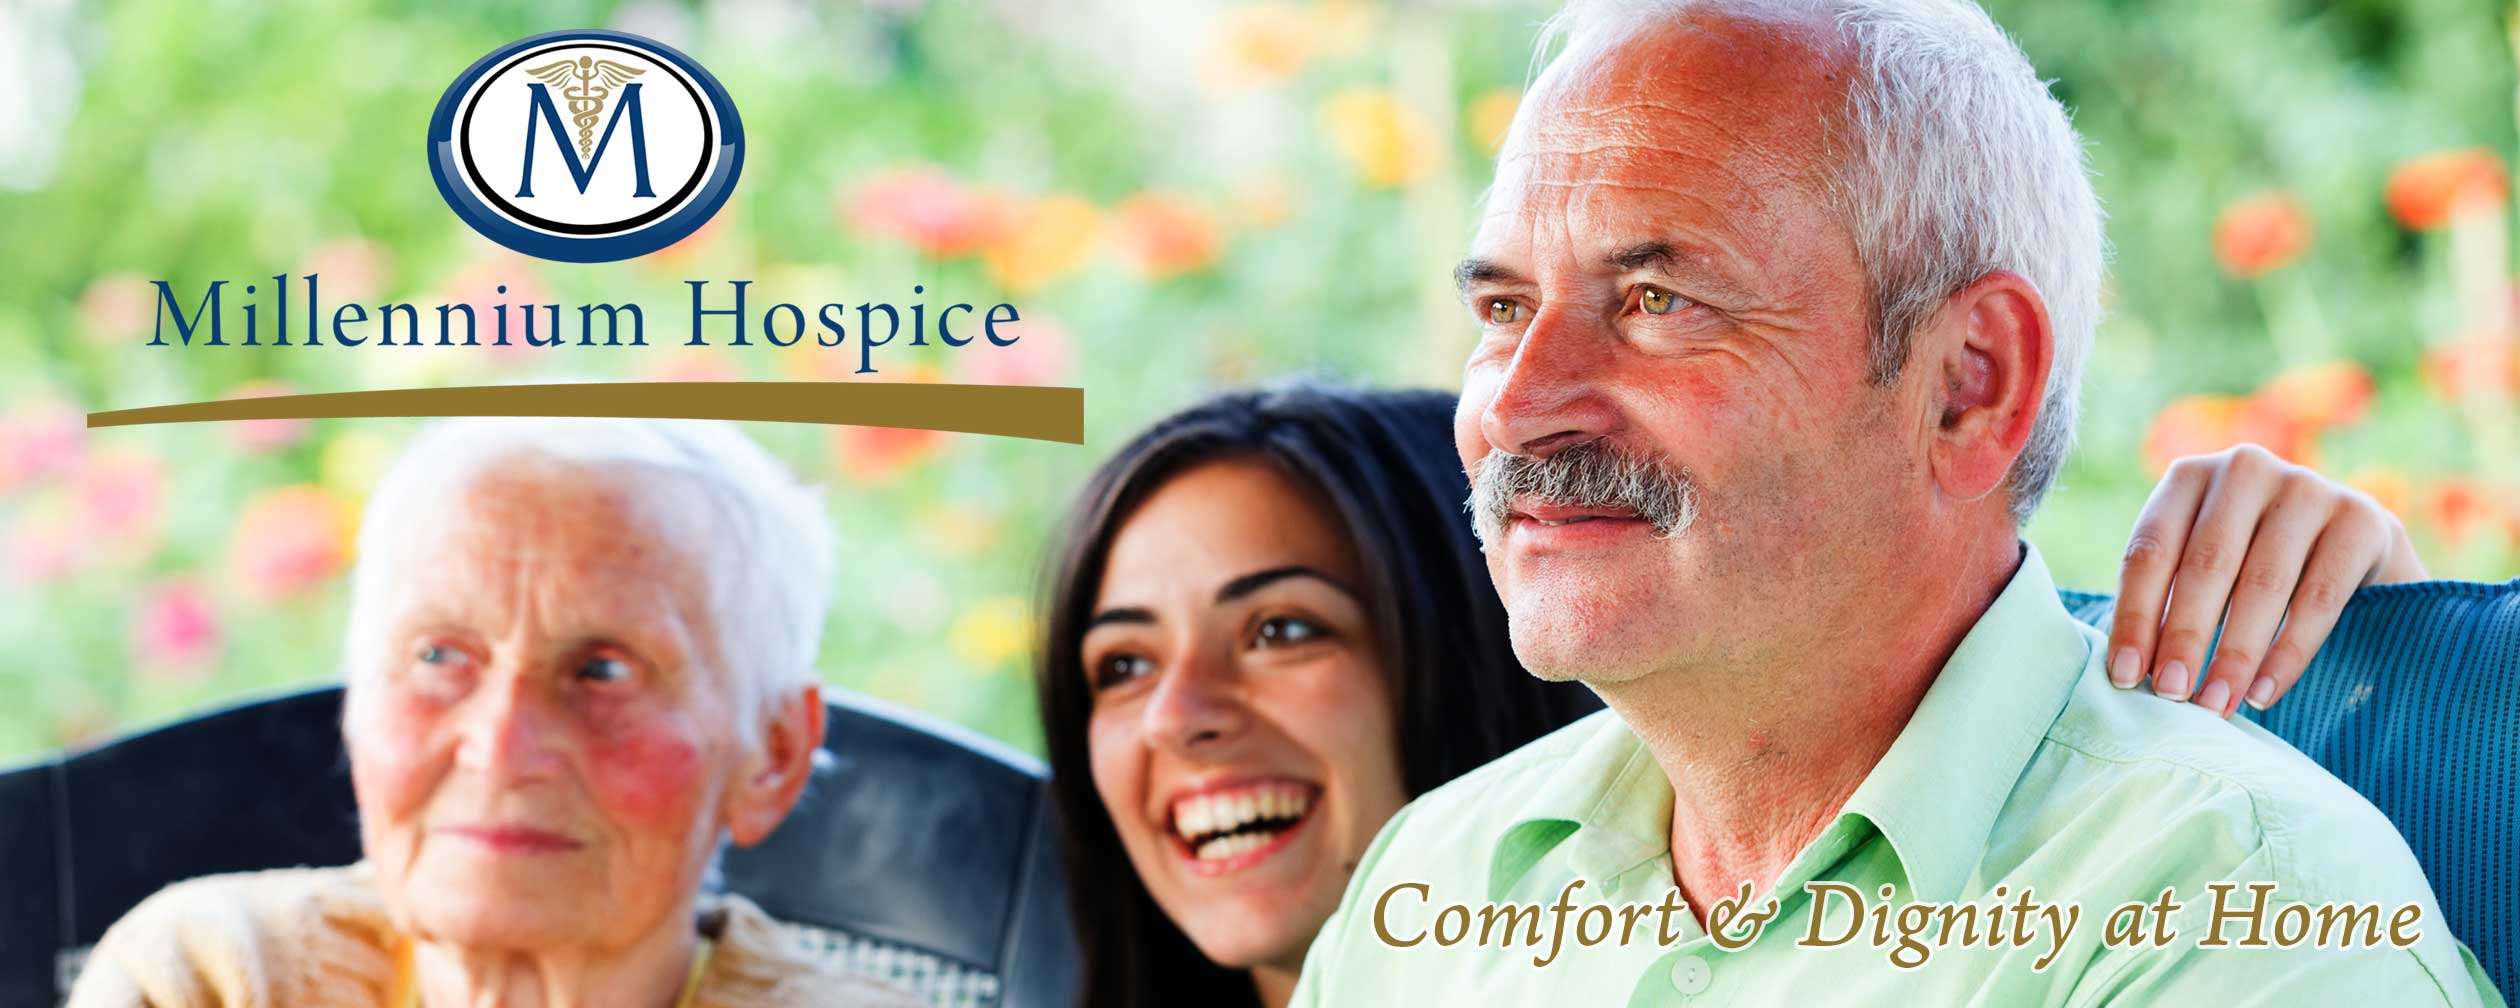 Hospice patients and nurse in north Houston, Texas area.